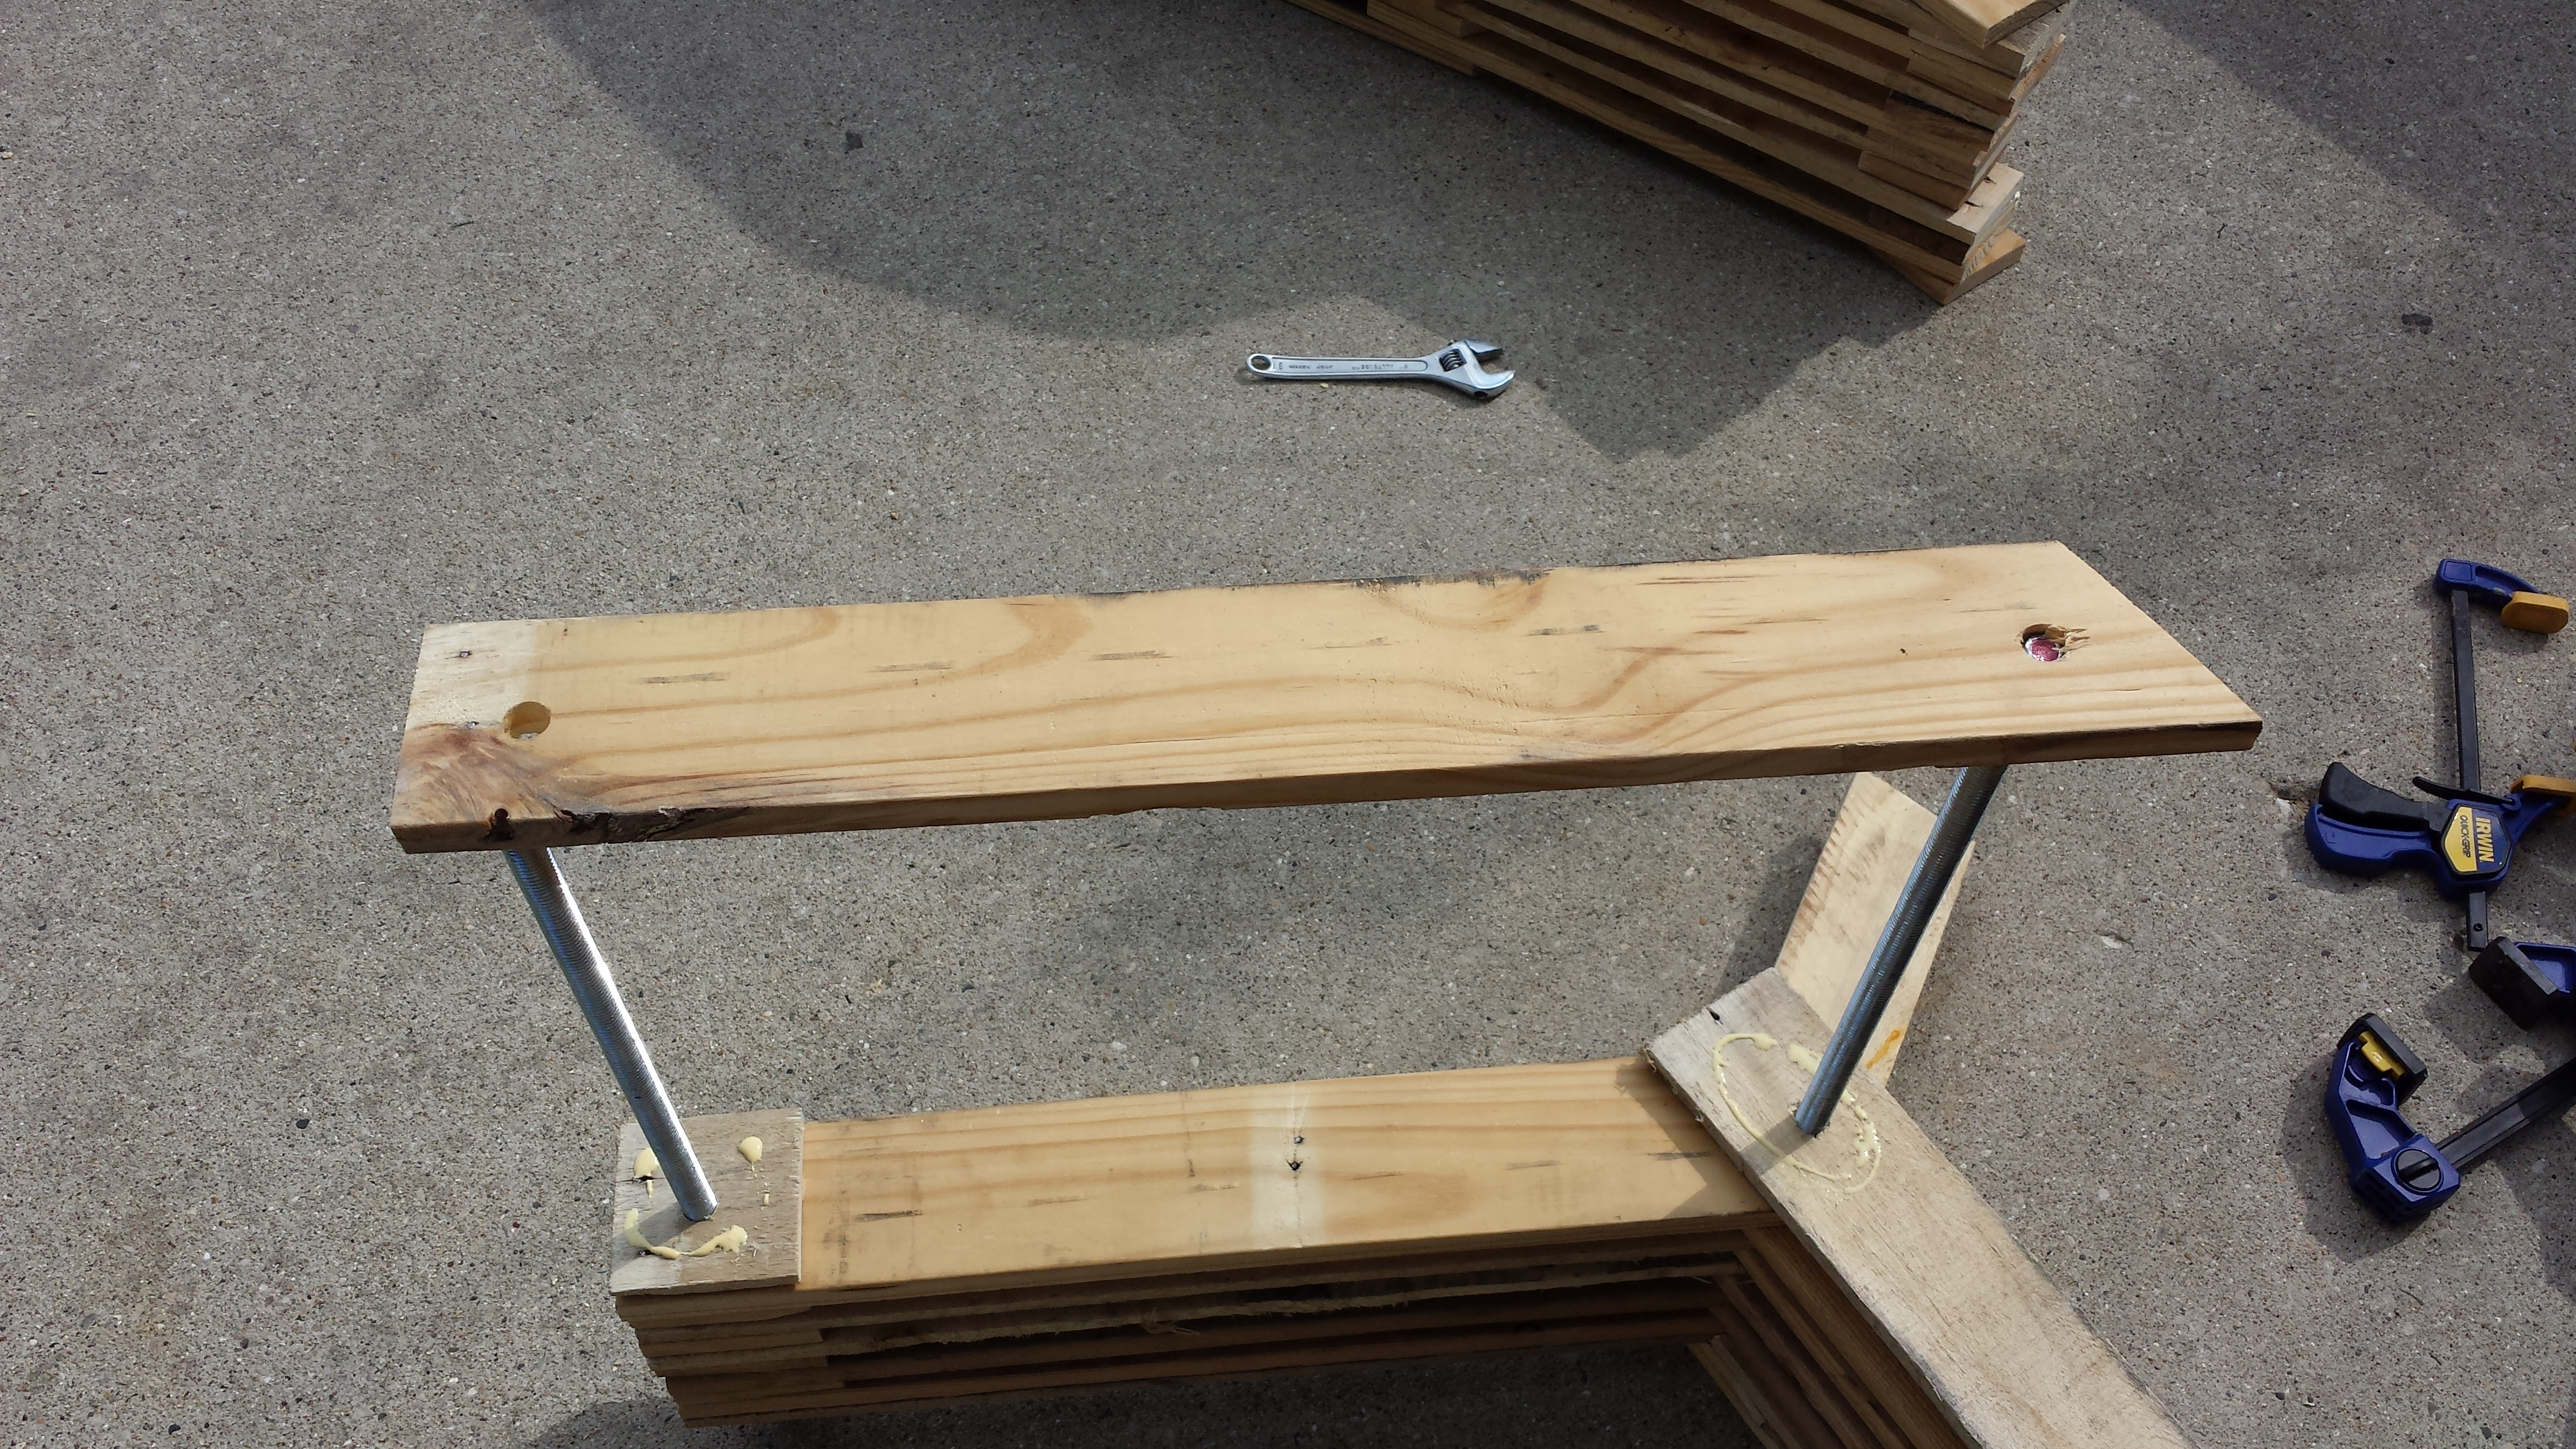 Picture of Dry Fitting and Gluing Seat and Back